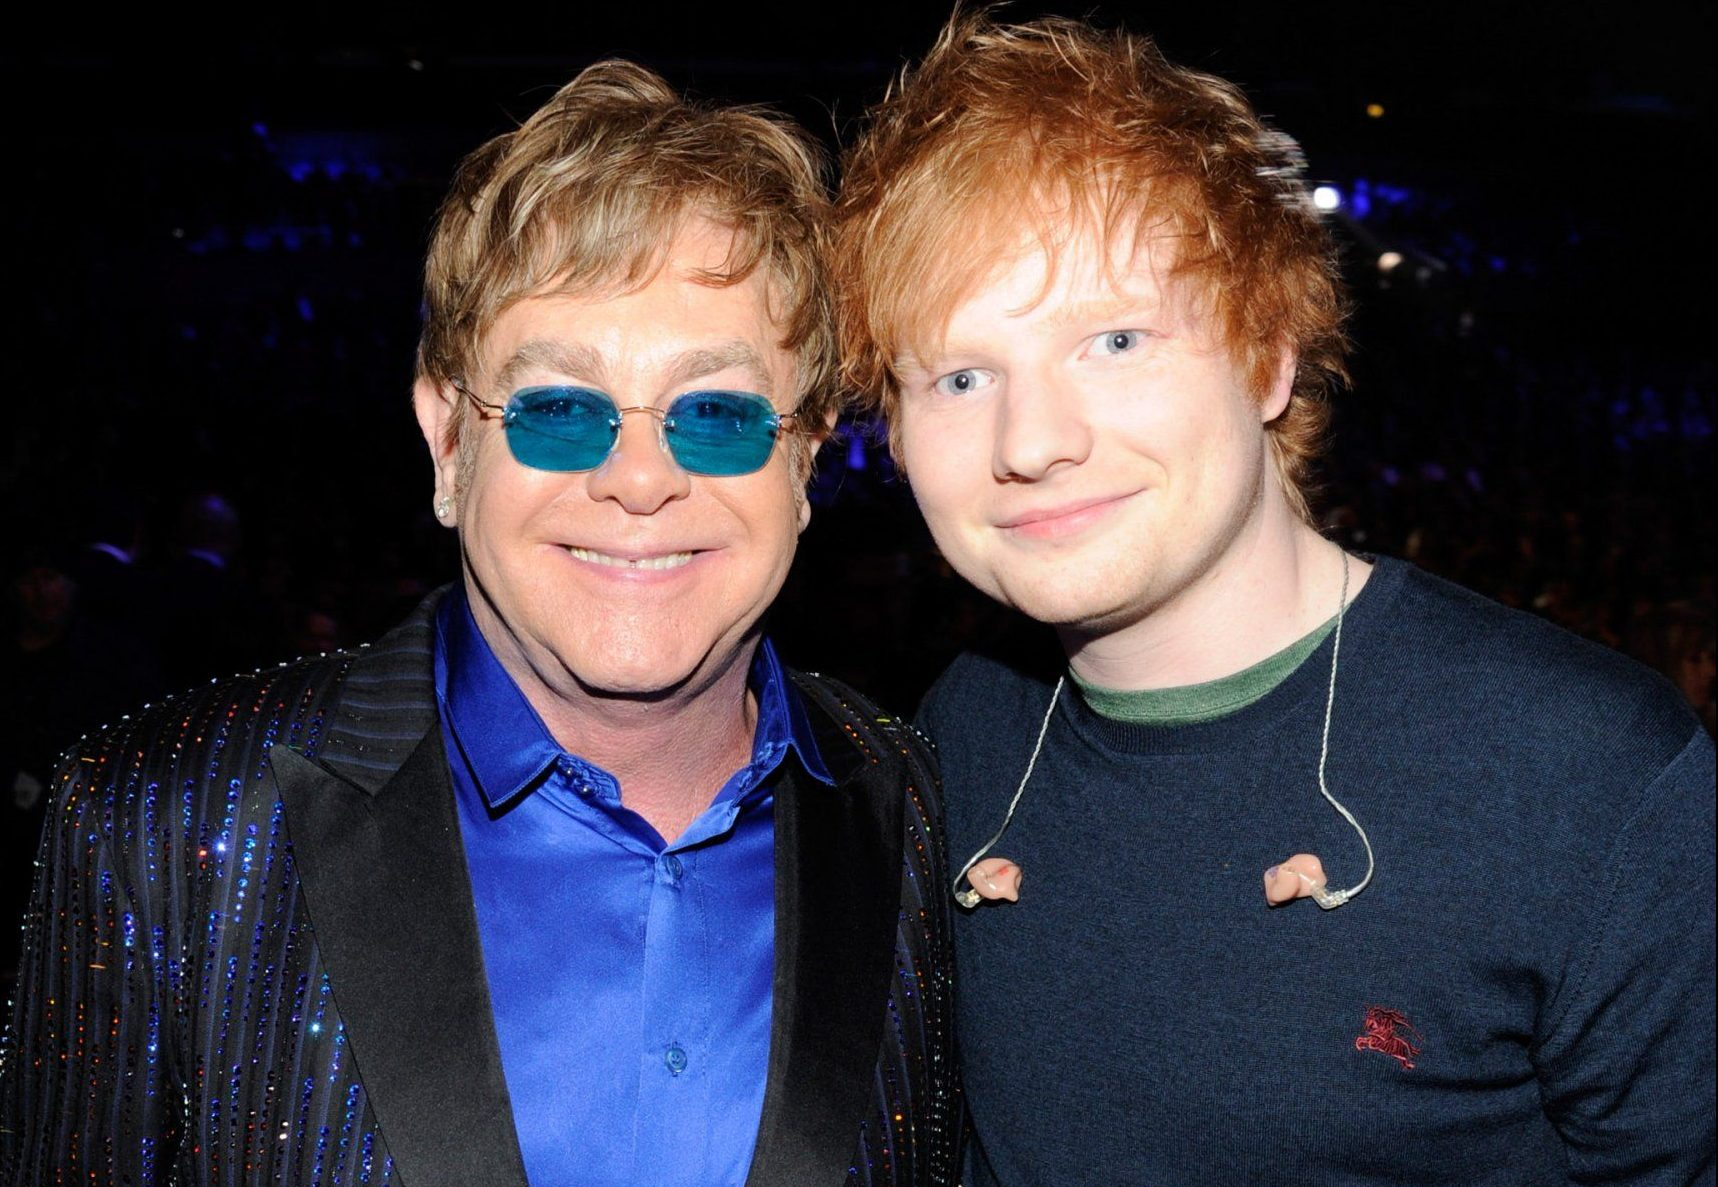 Elton John warns Ed Sheeran that people won't always like his music